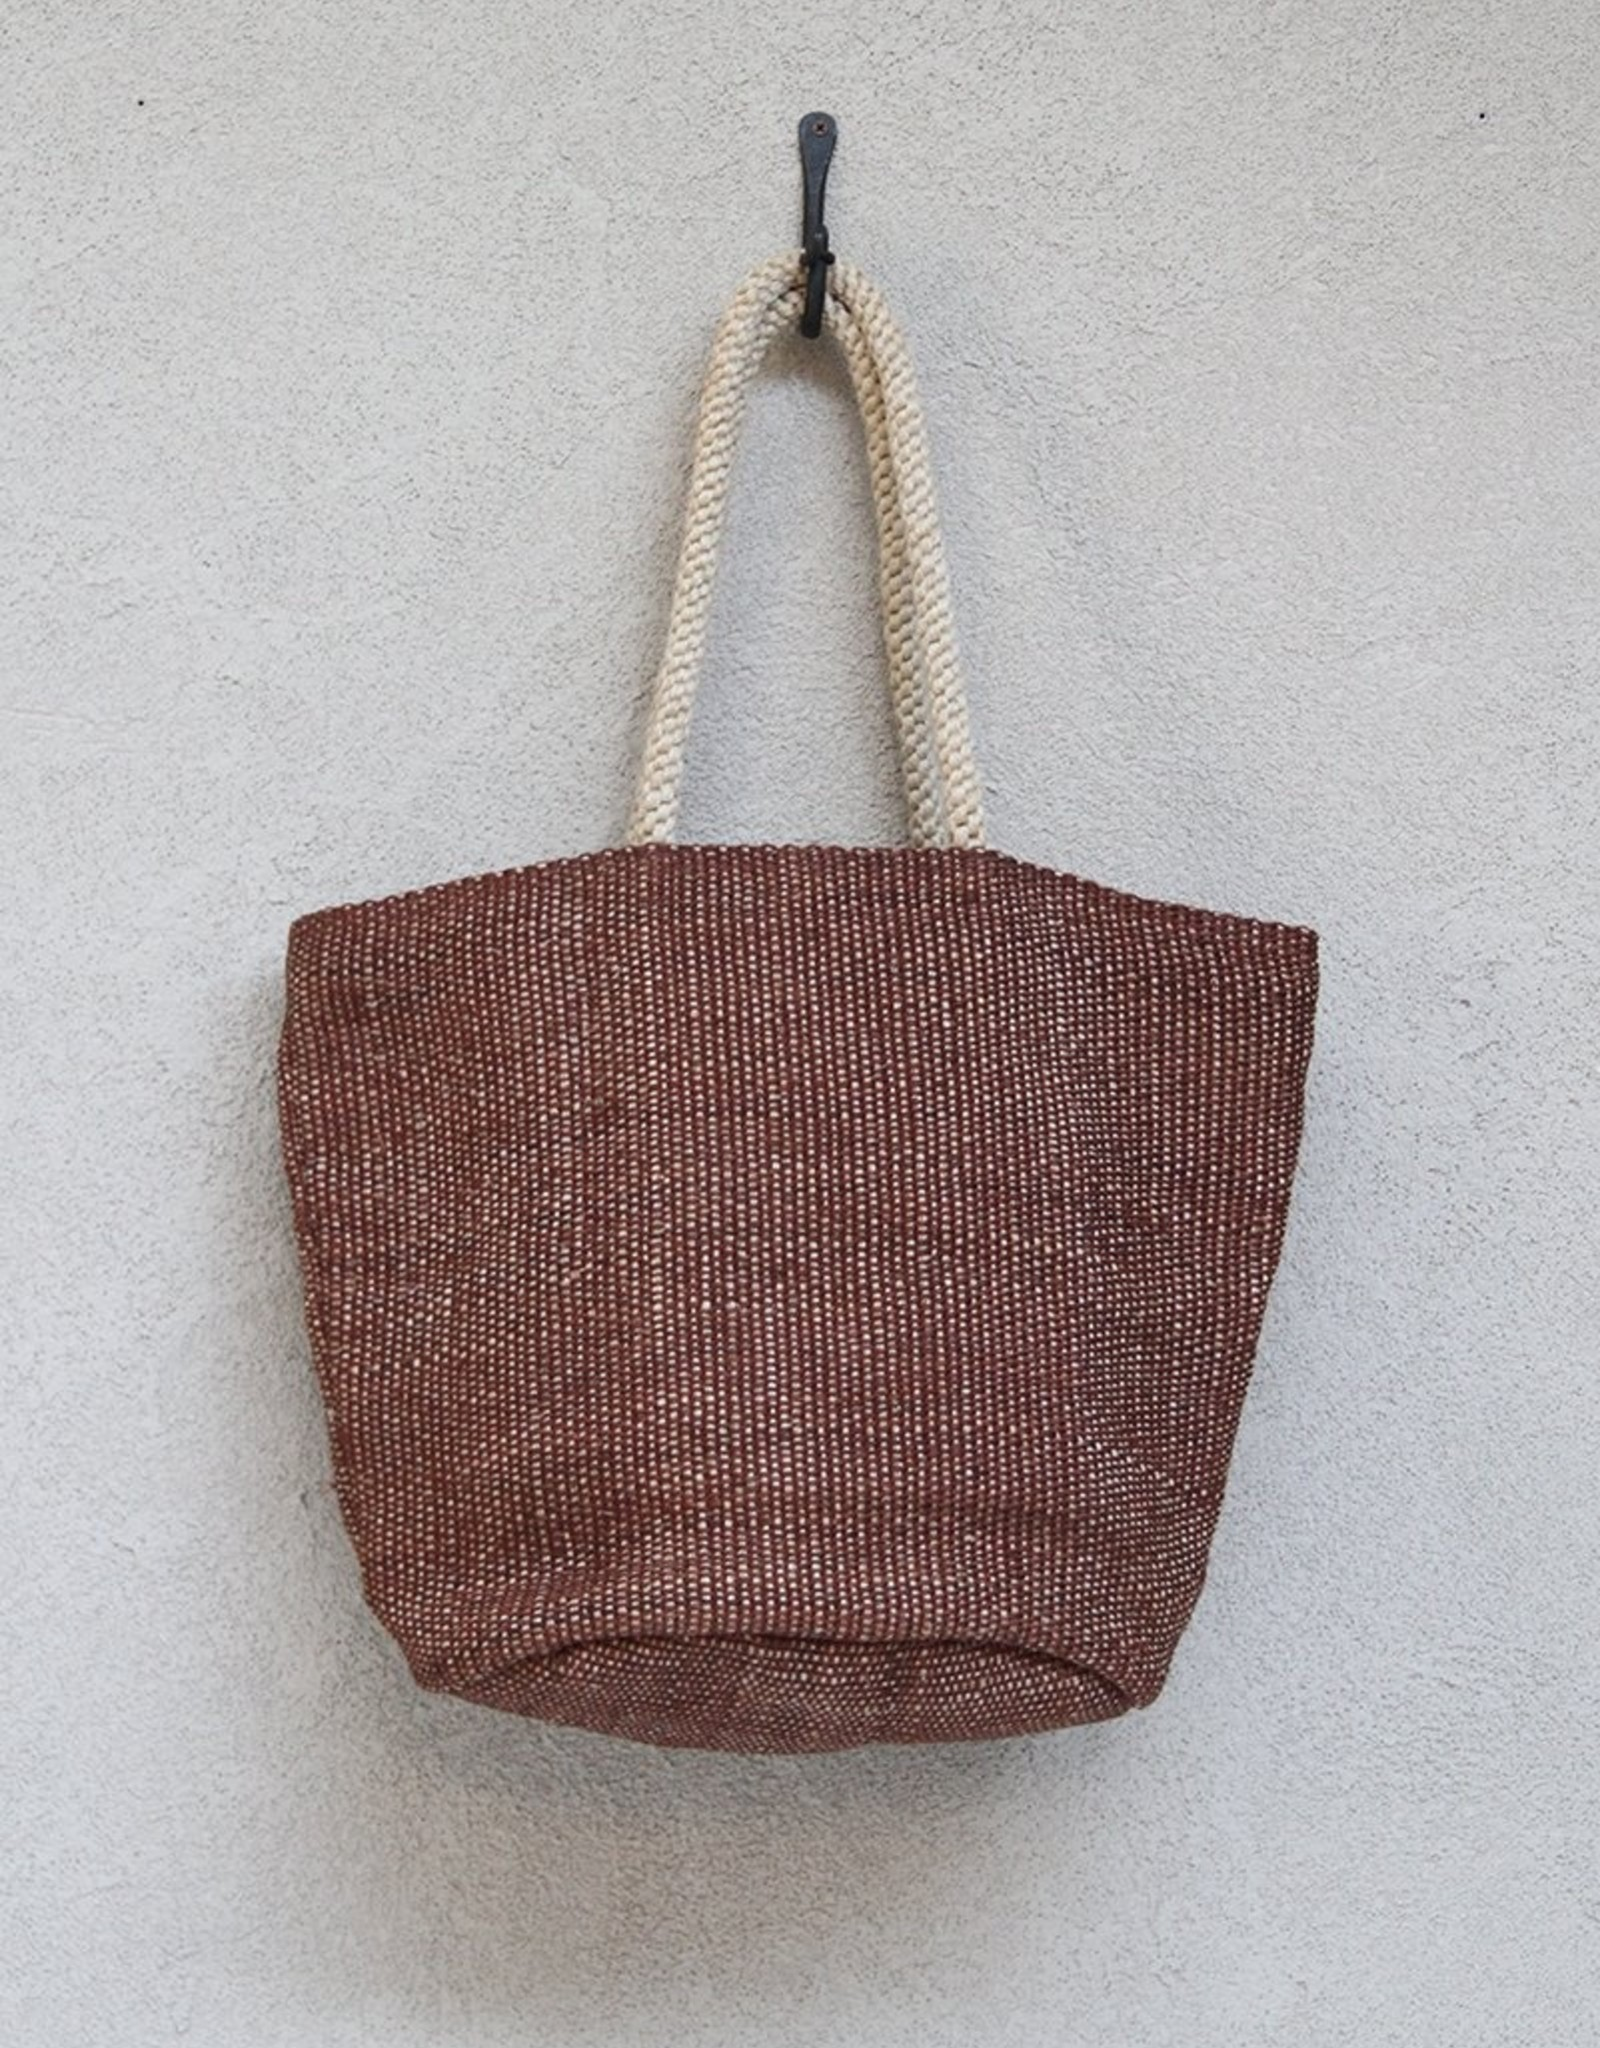 THE DHARMA DOOR UTTAM TOTE - EARTH